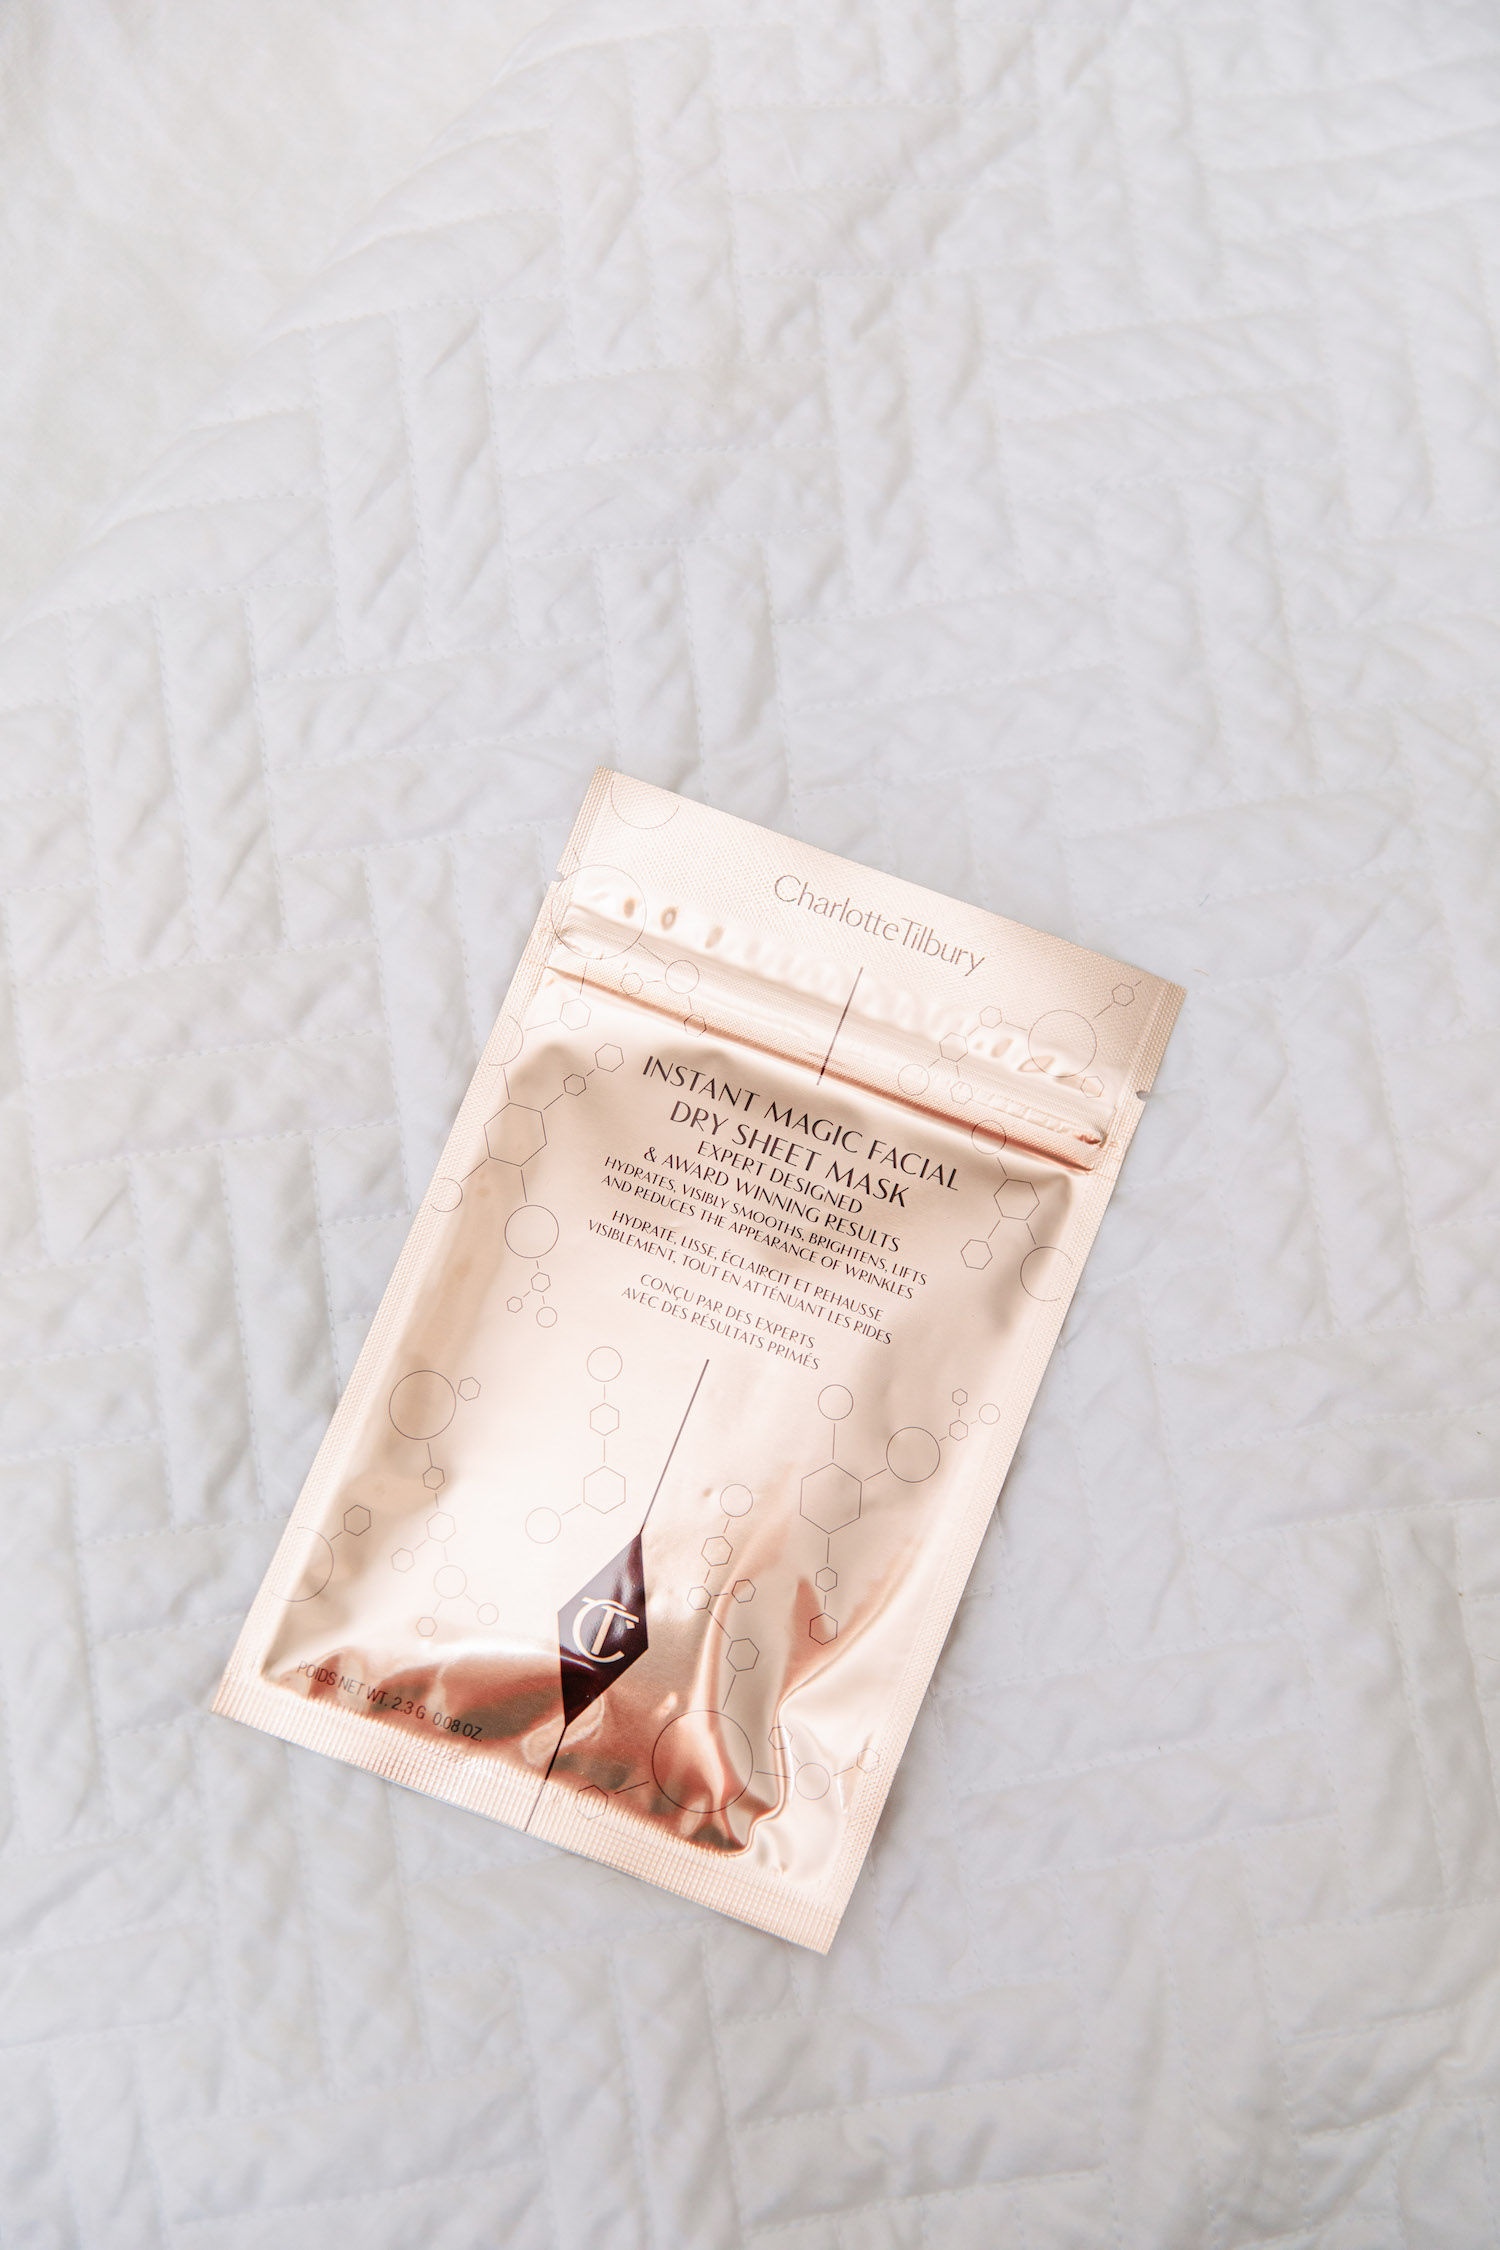 Charlotte Tilbury's Dry Sheet Mask | My Six Favorite Face Masks Right Now